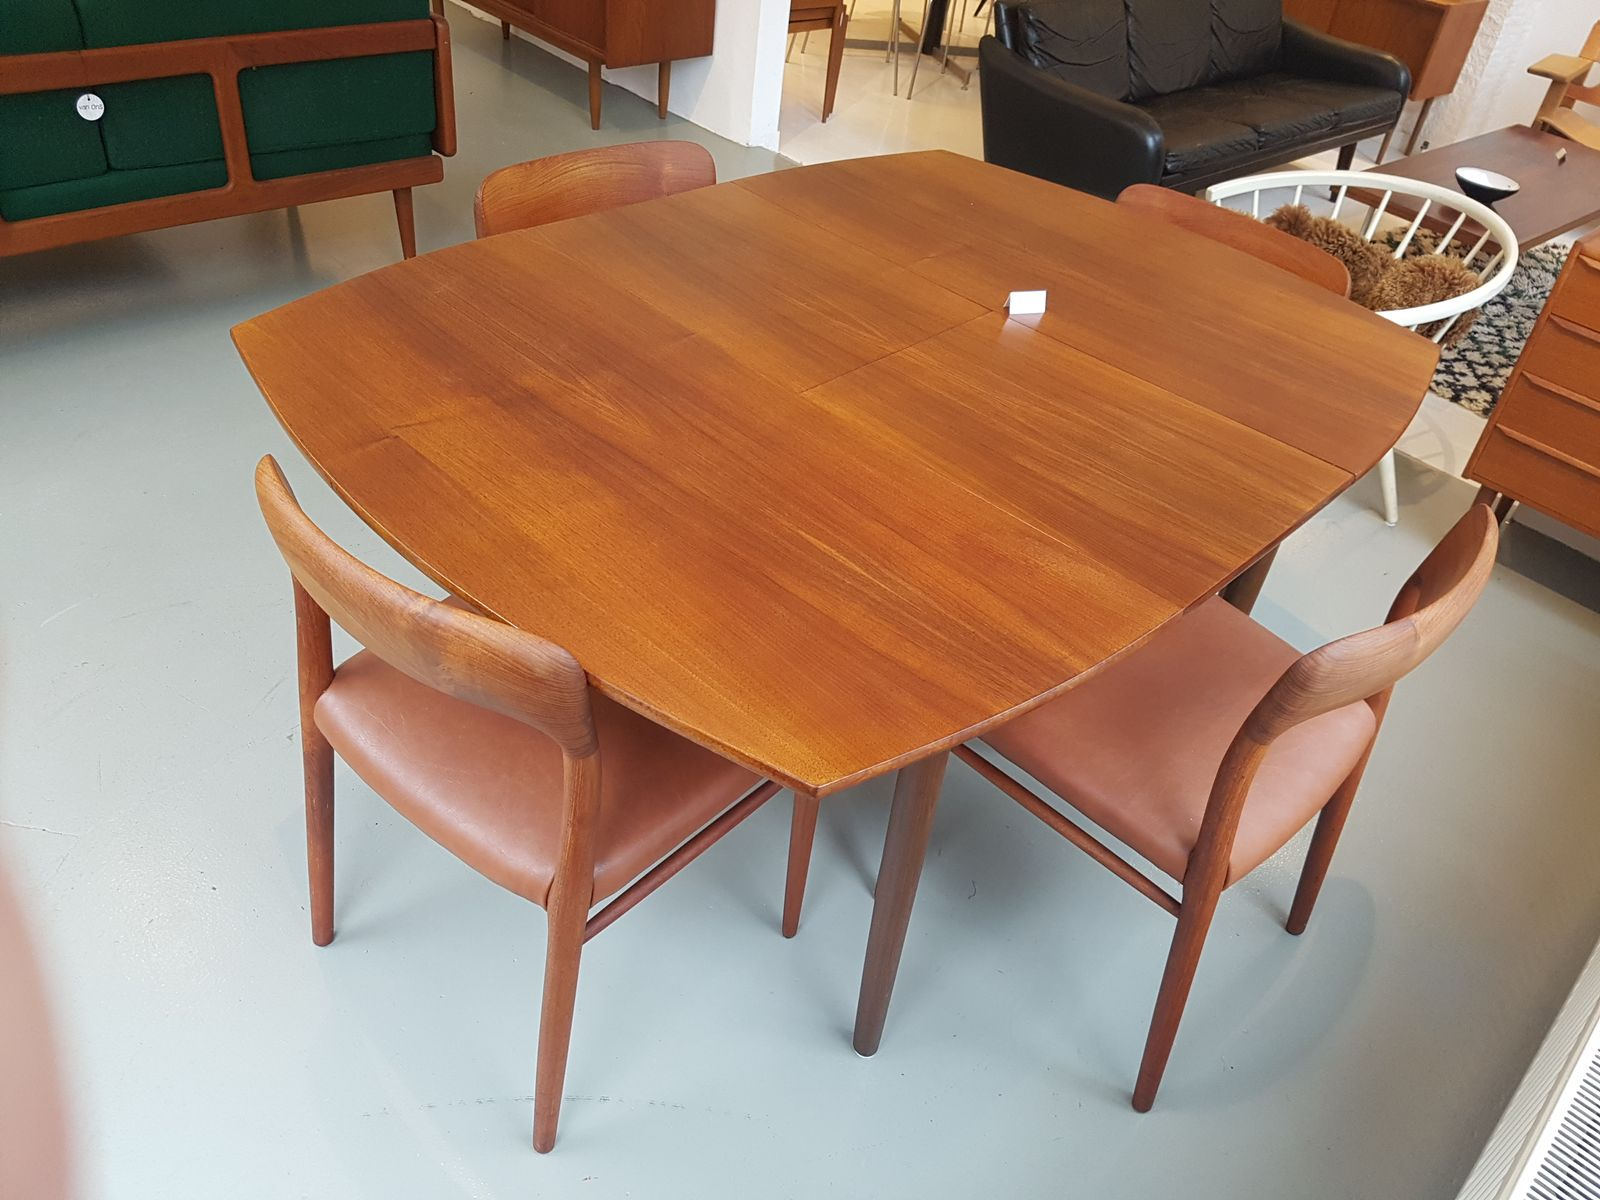 Vintage Teak Square Extendable Dining Table For Sale At Pamono